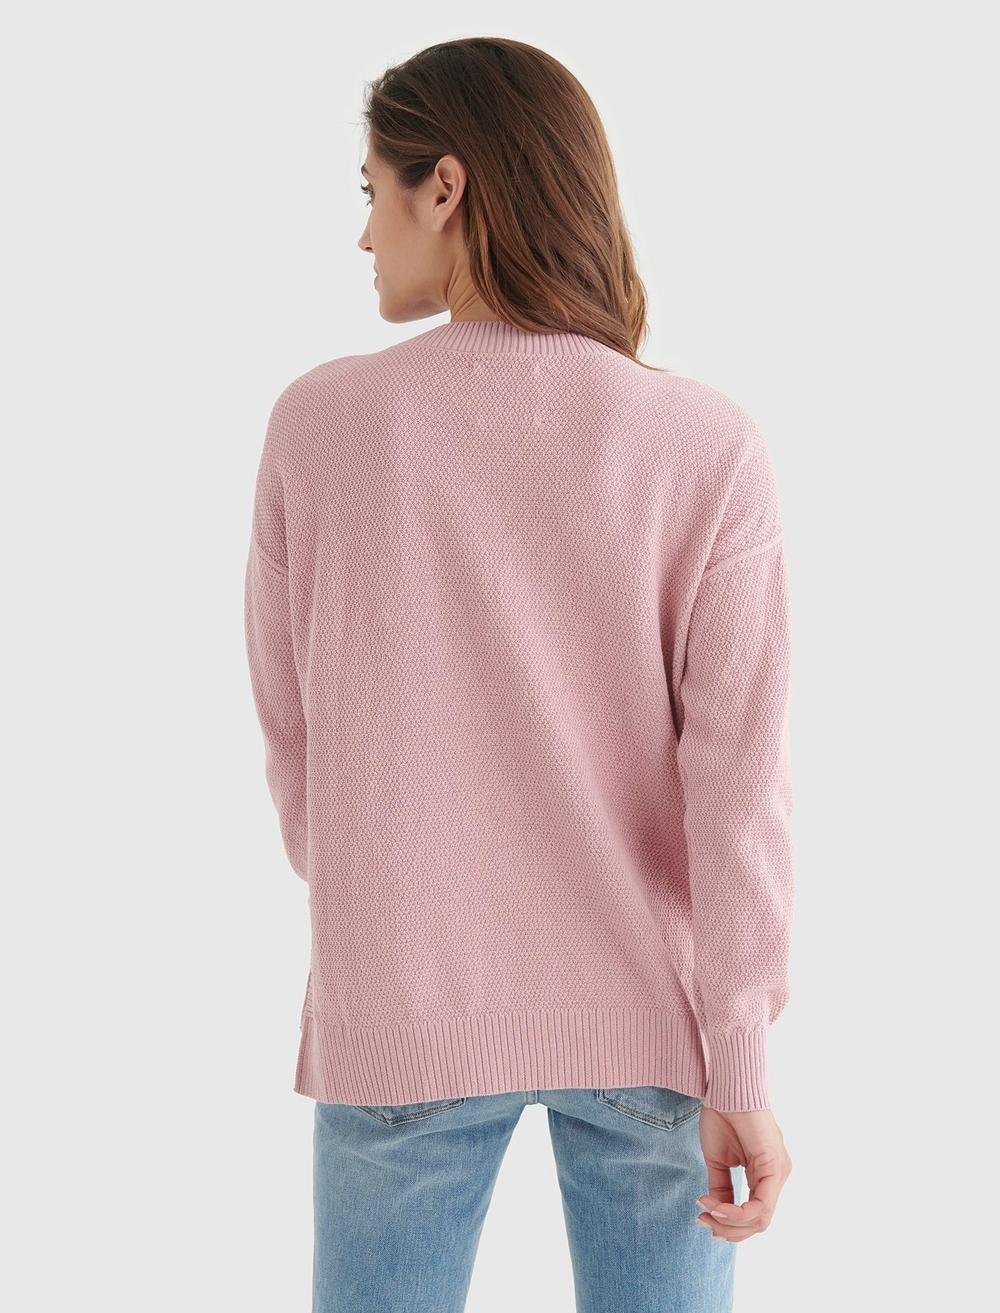 TEXTURED KNIT SWEATER, image 5